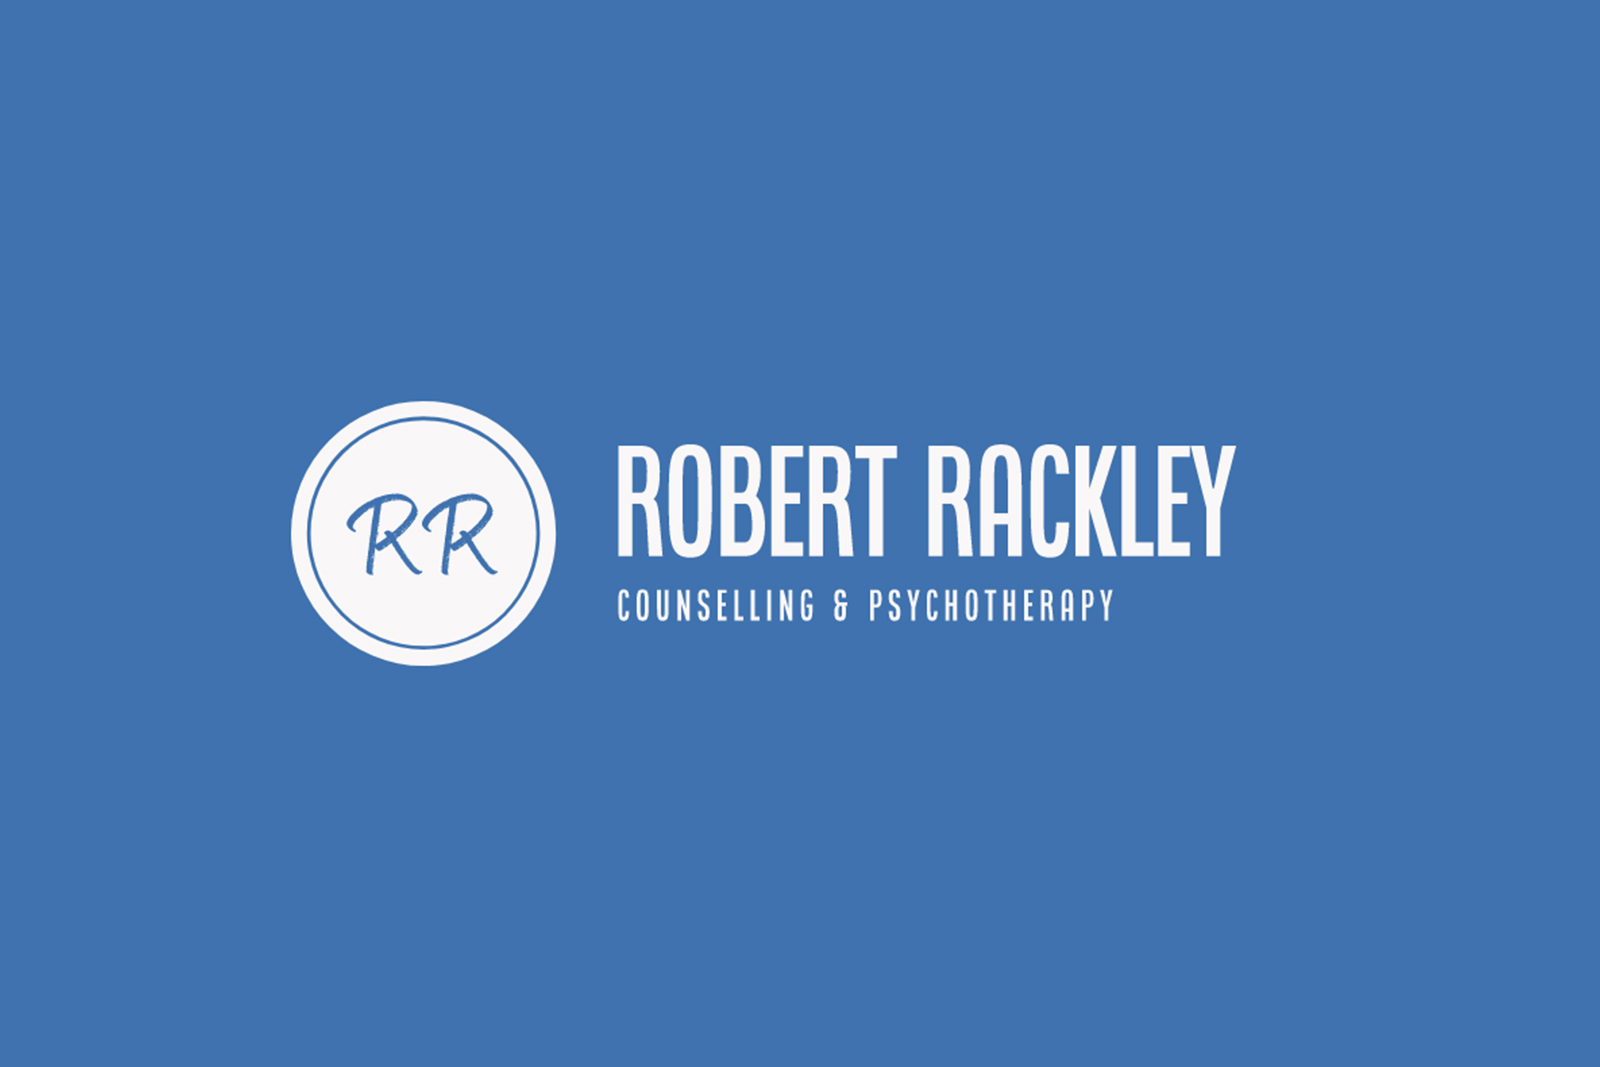 Robert Rackley Counselling